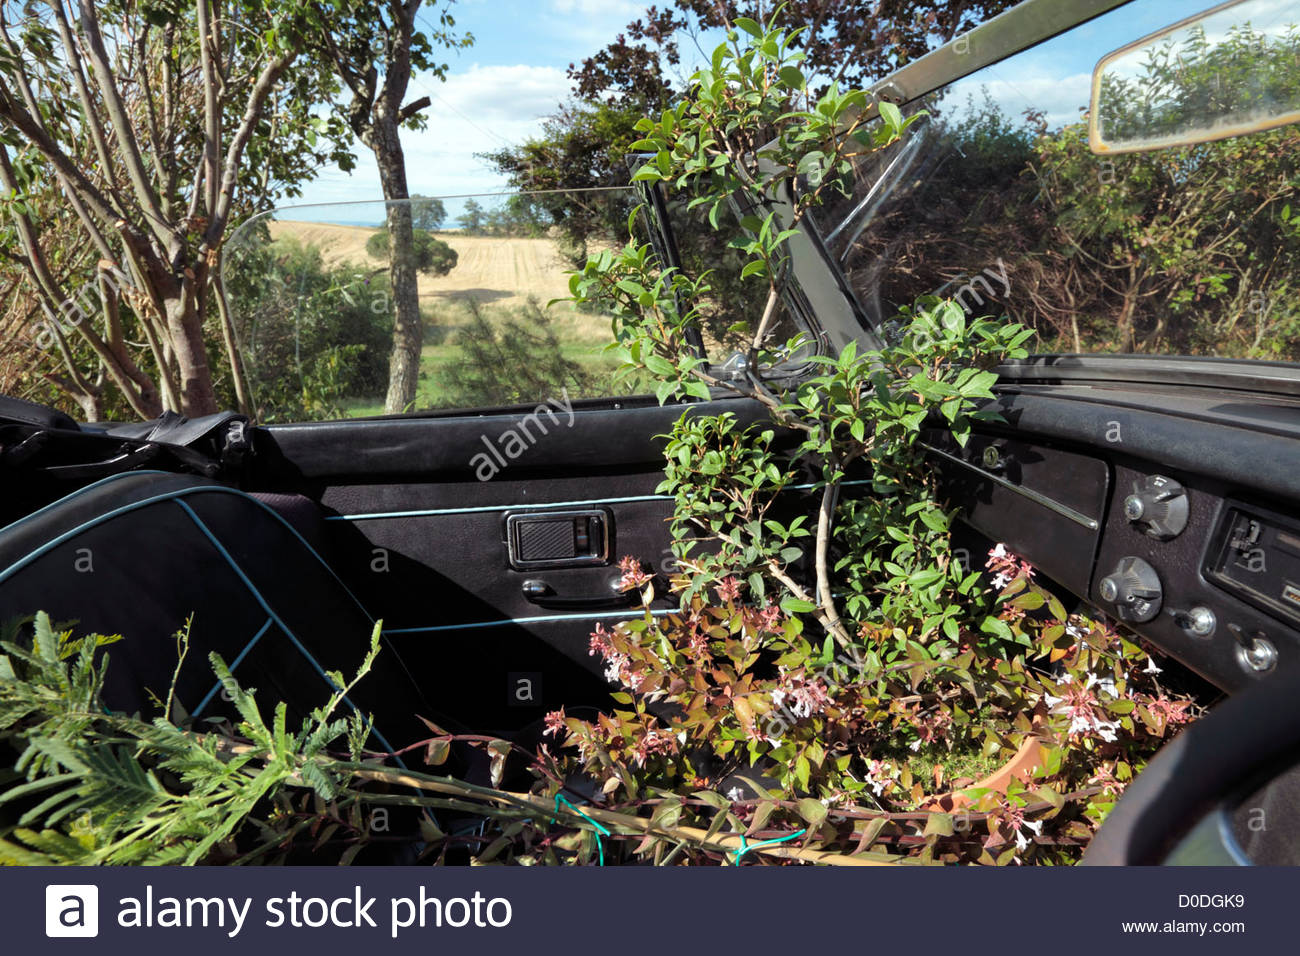 MG sports car with plants inside - Stock Image